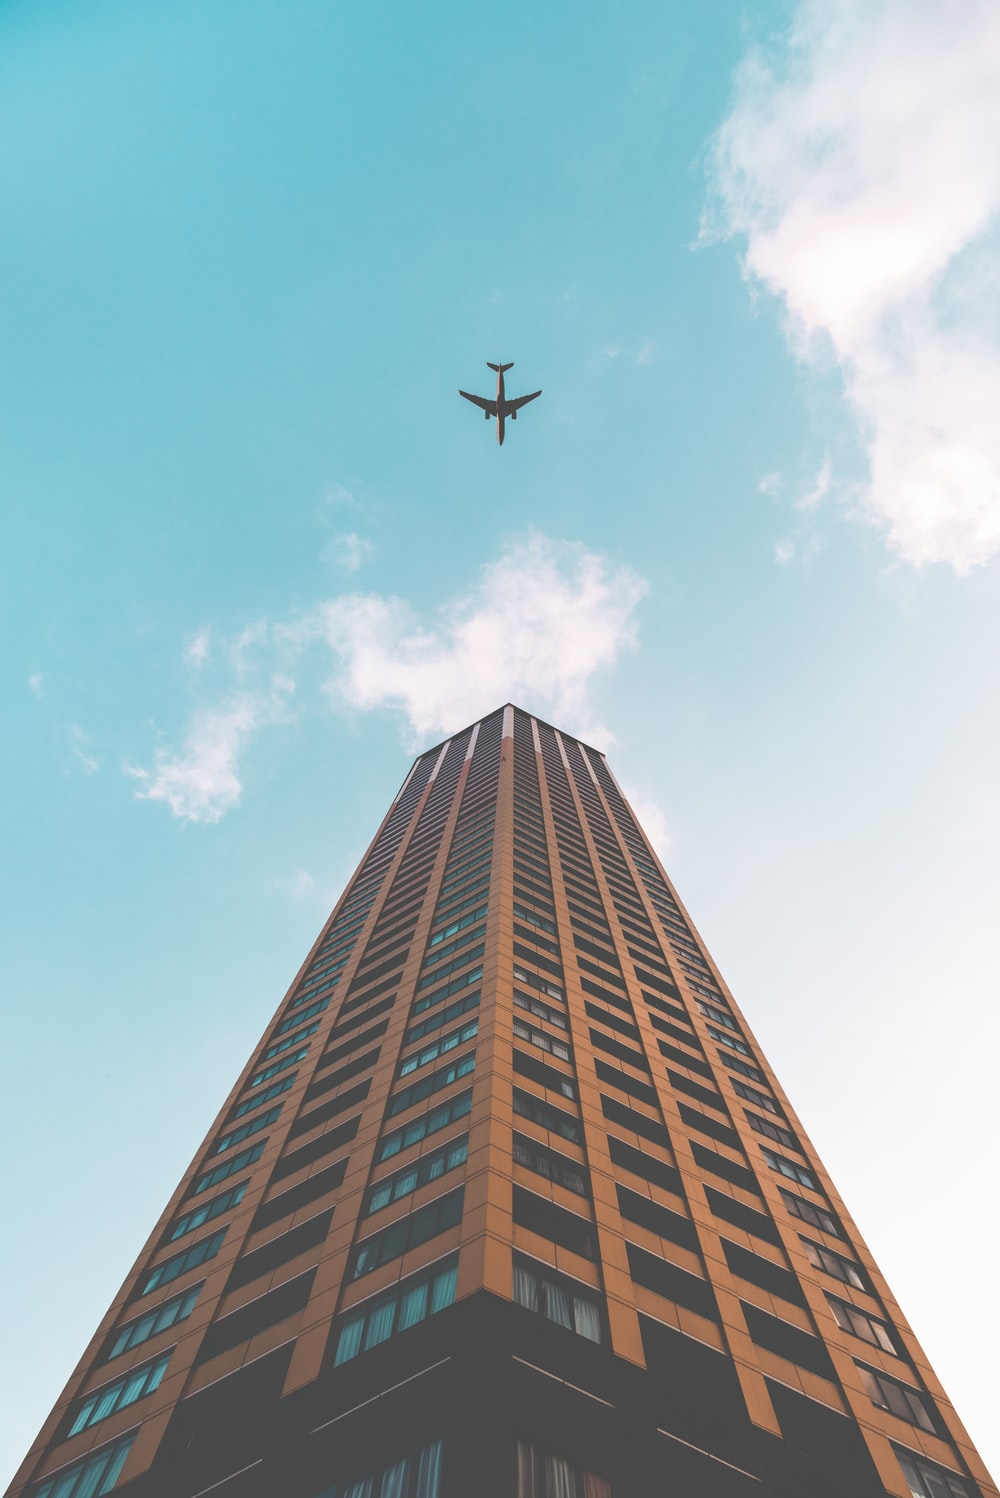 bottom view shot of airplane flying above high rise building